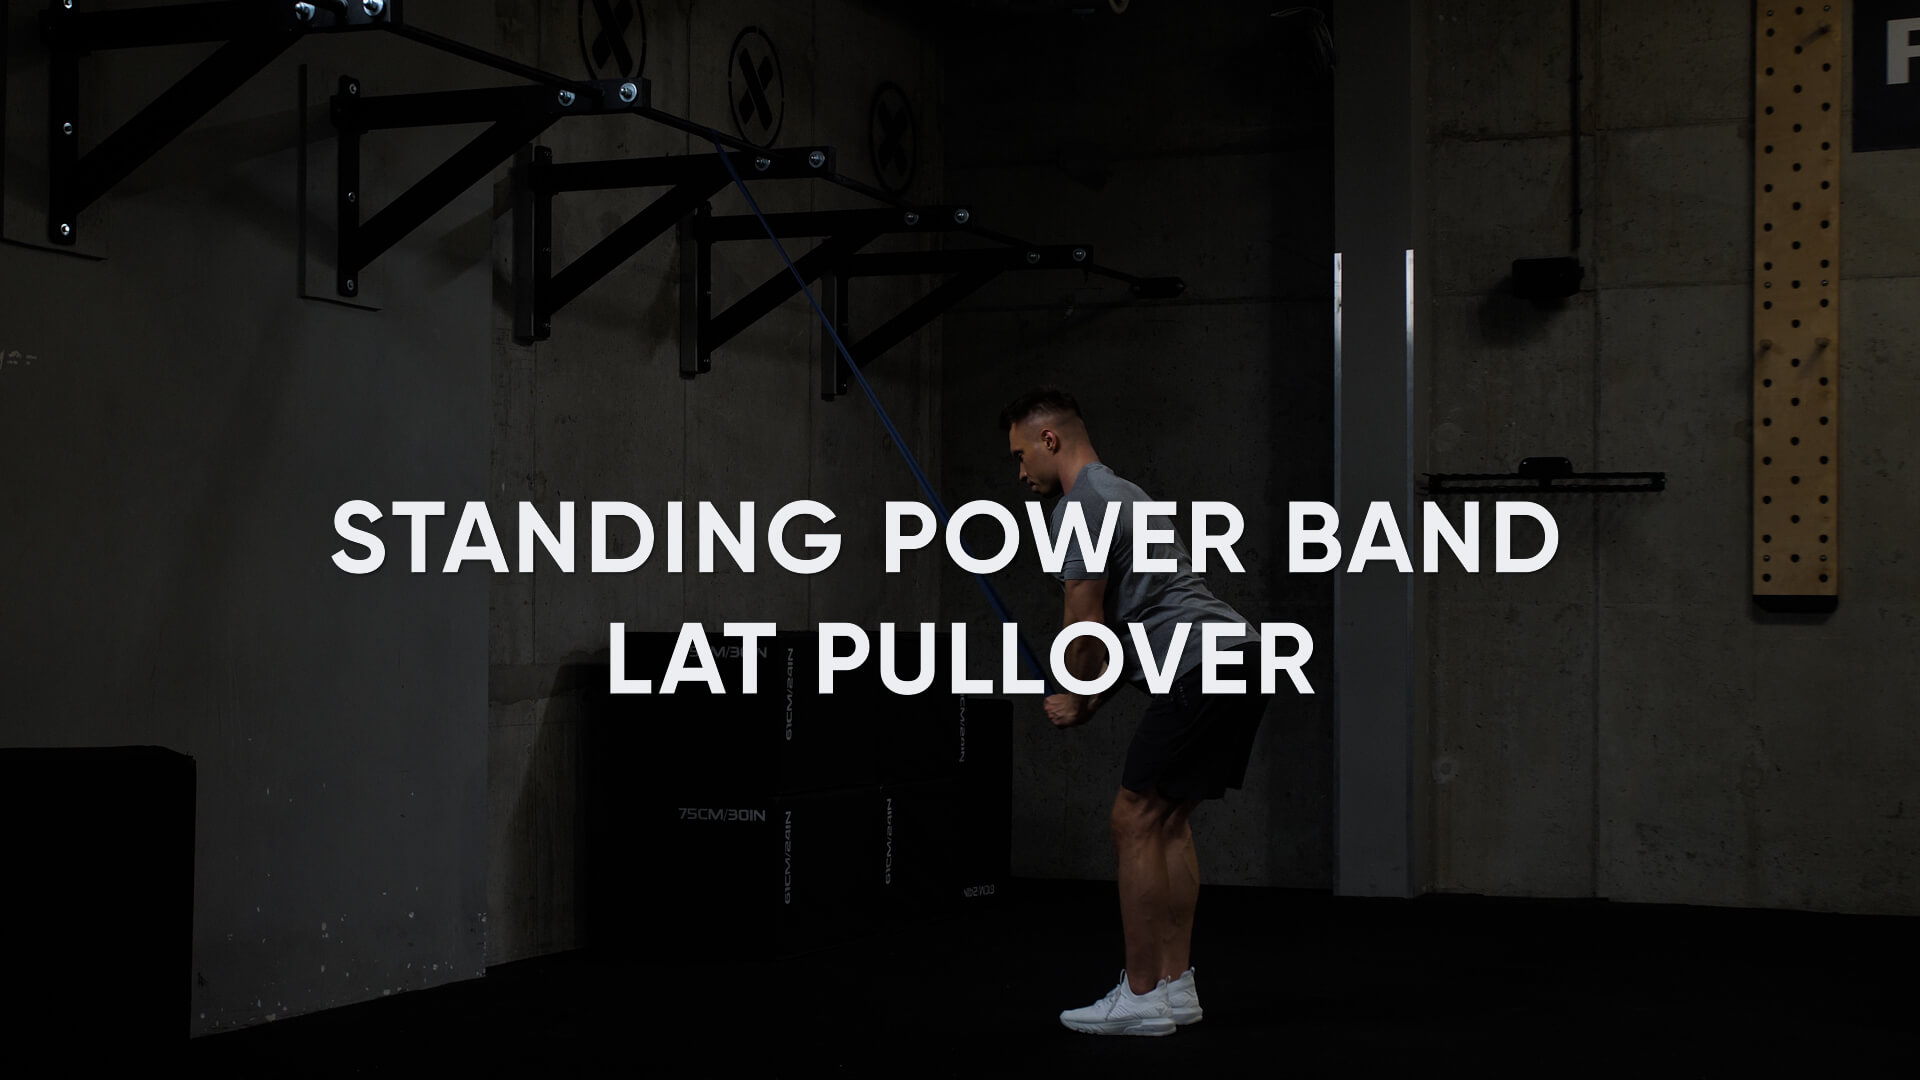 Standing Power Band Lat Pullover